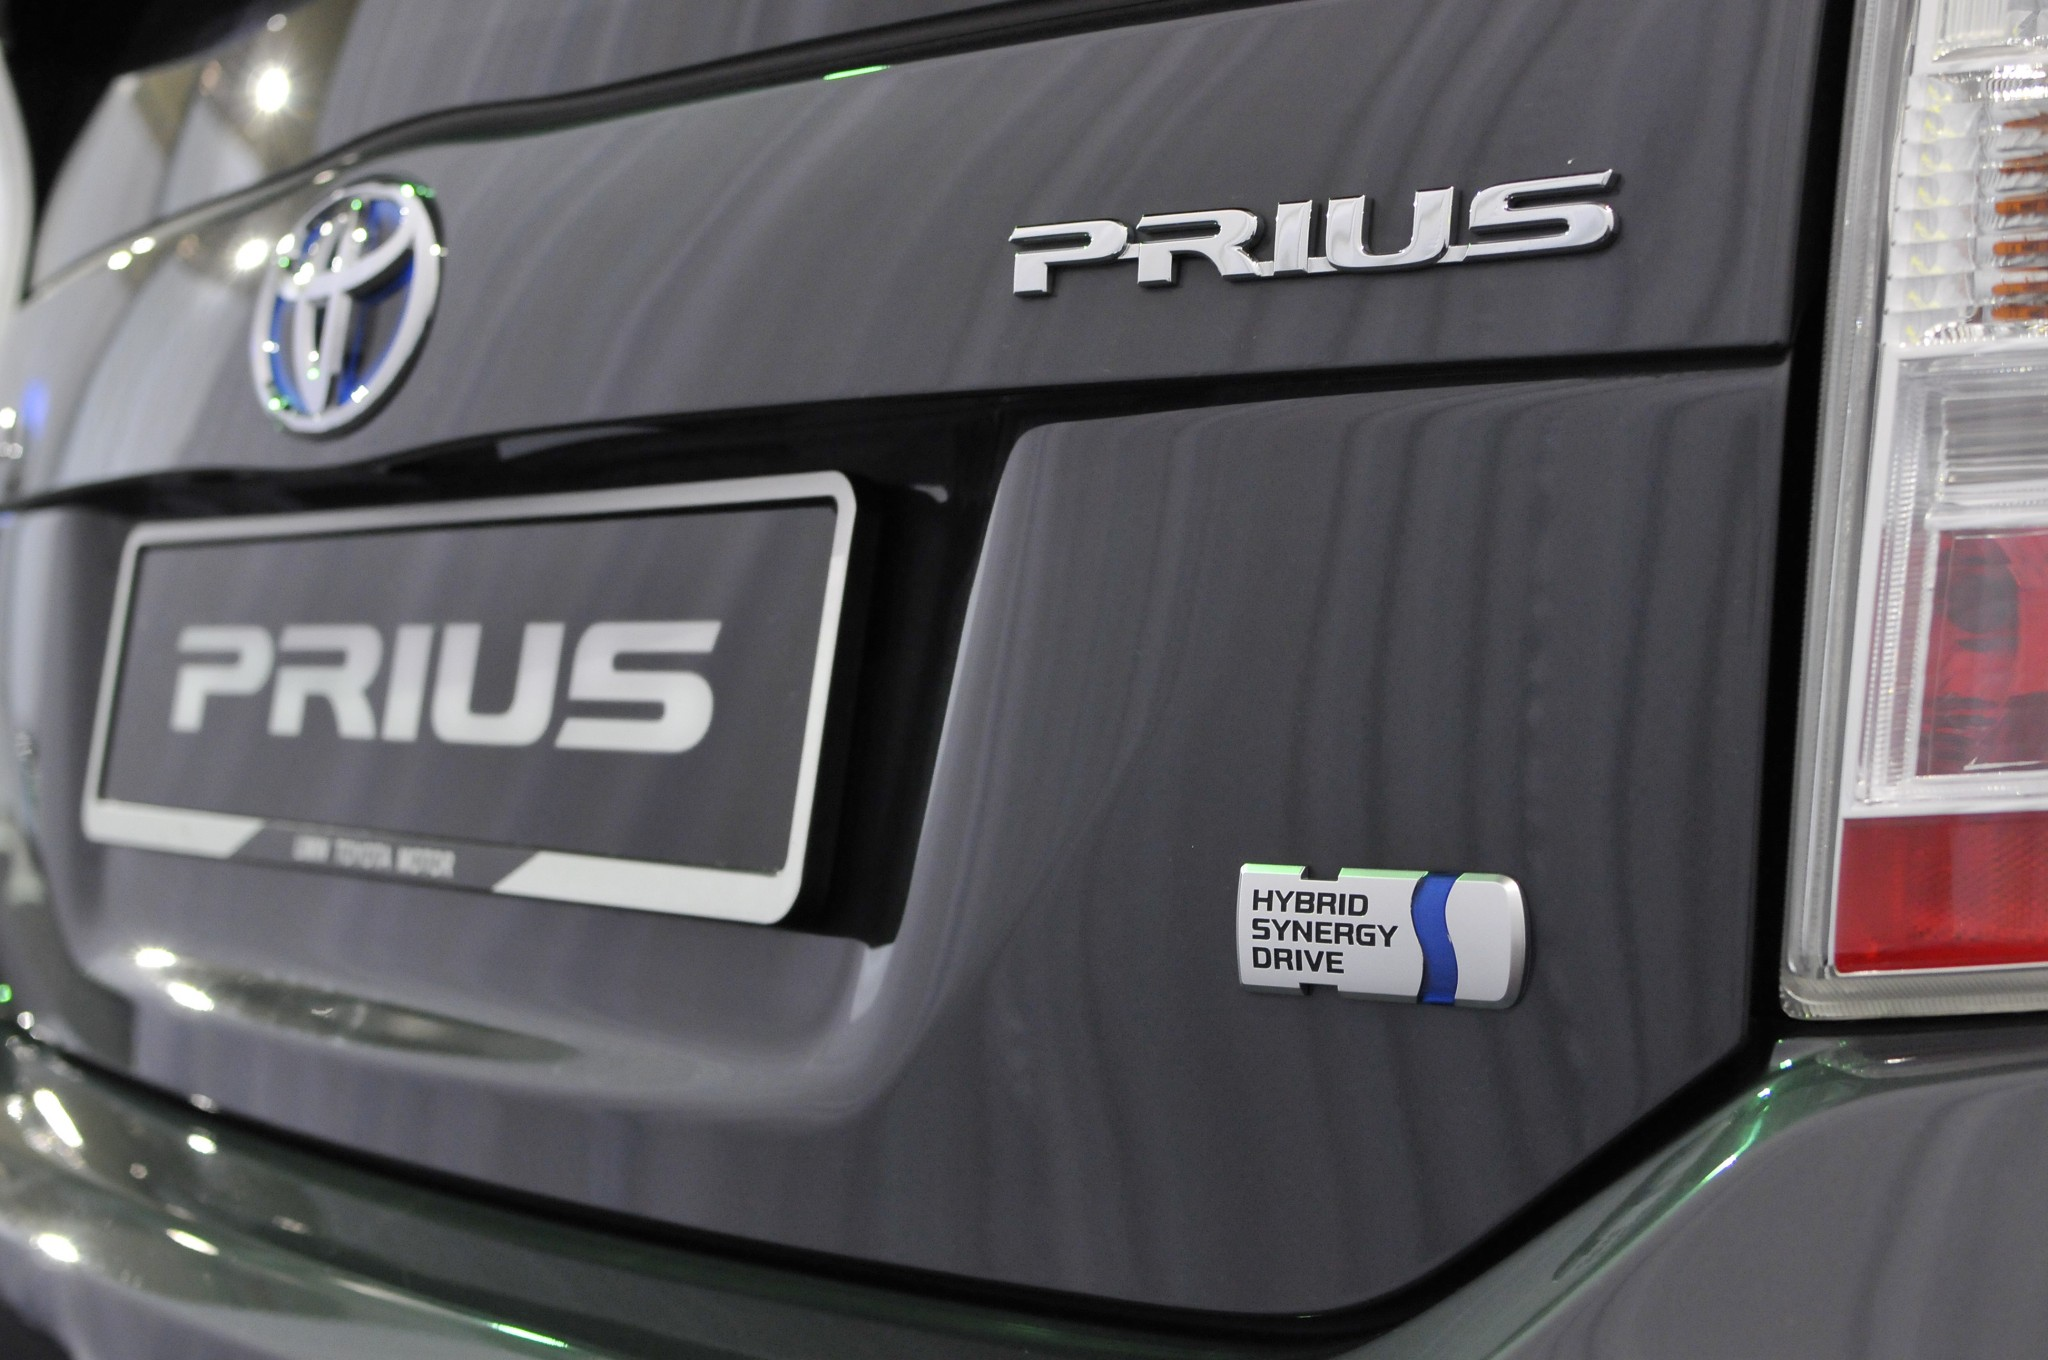 Prius Purchases and Conspicuous Conservation